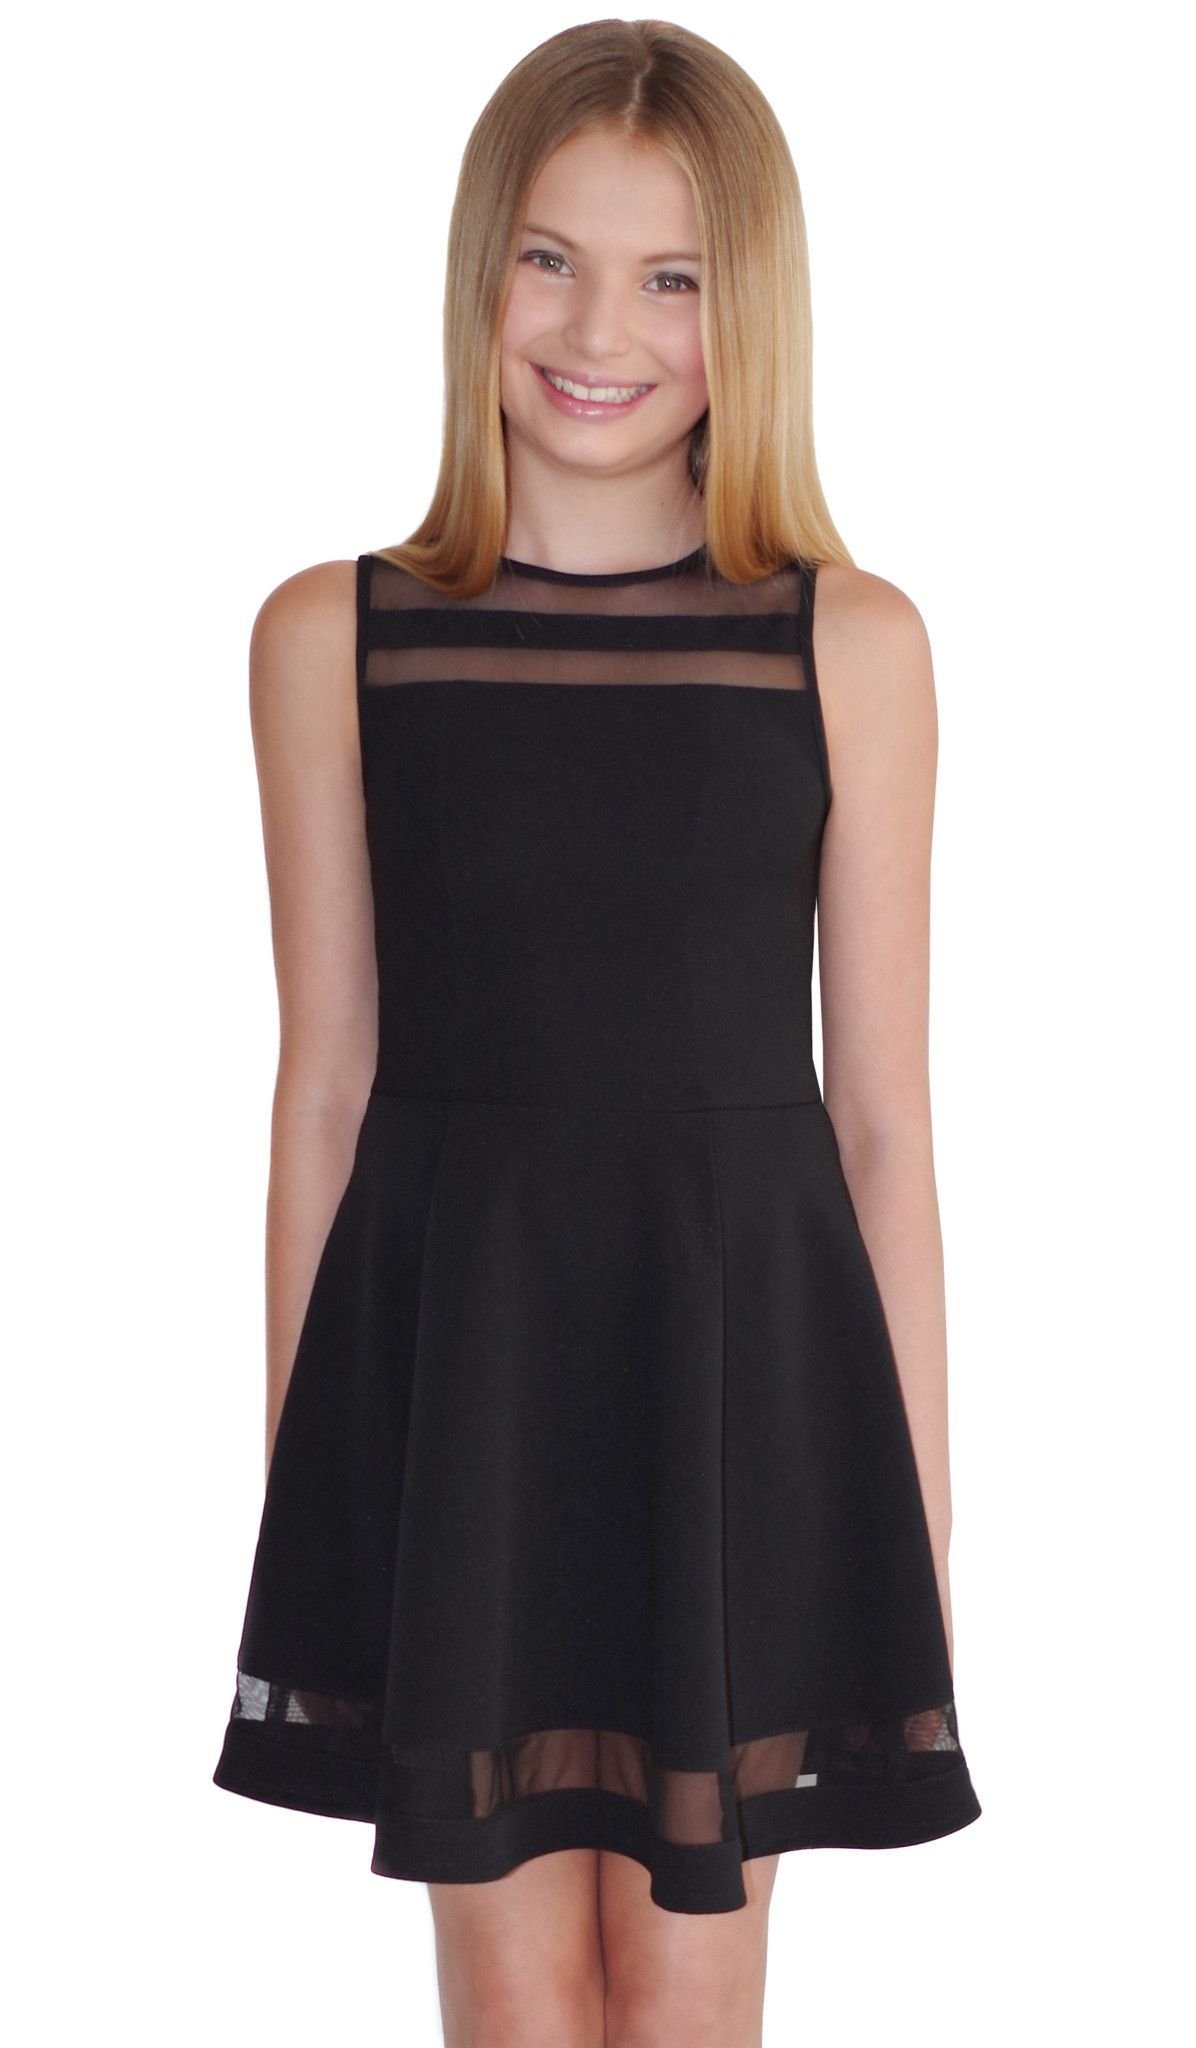 Black textured stretch knit with black sheer mesh inserts ...